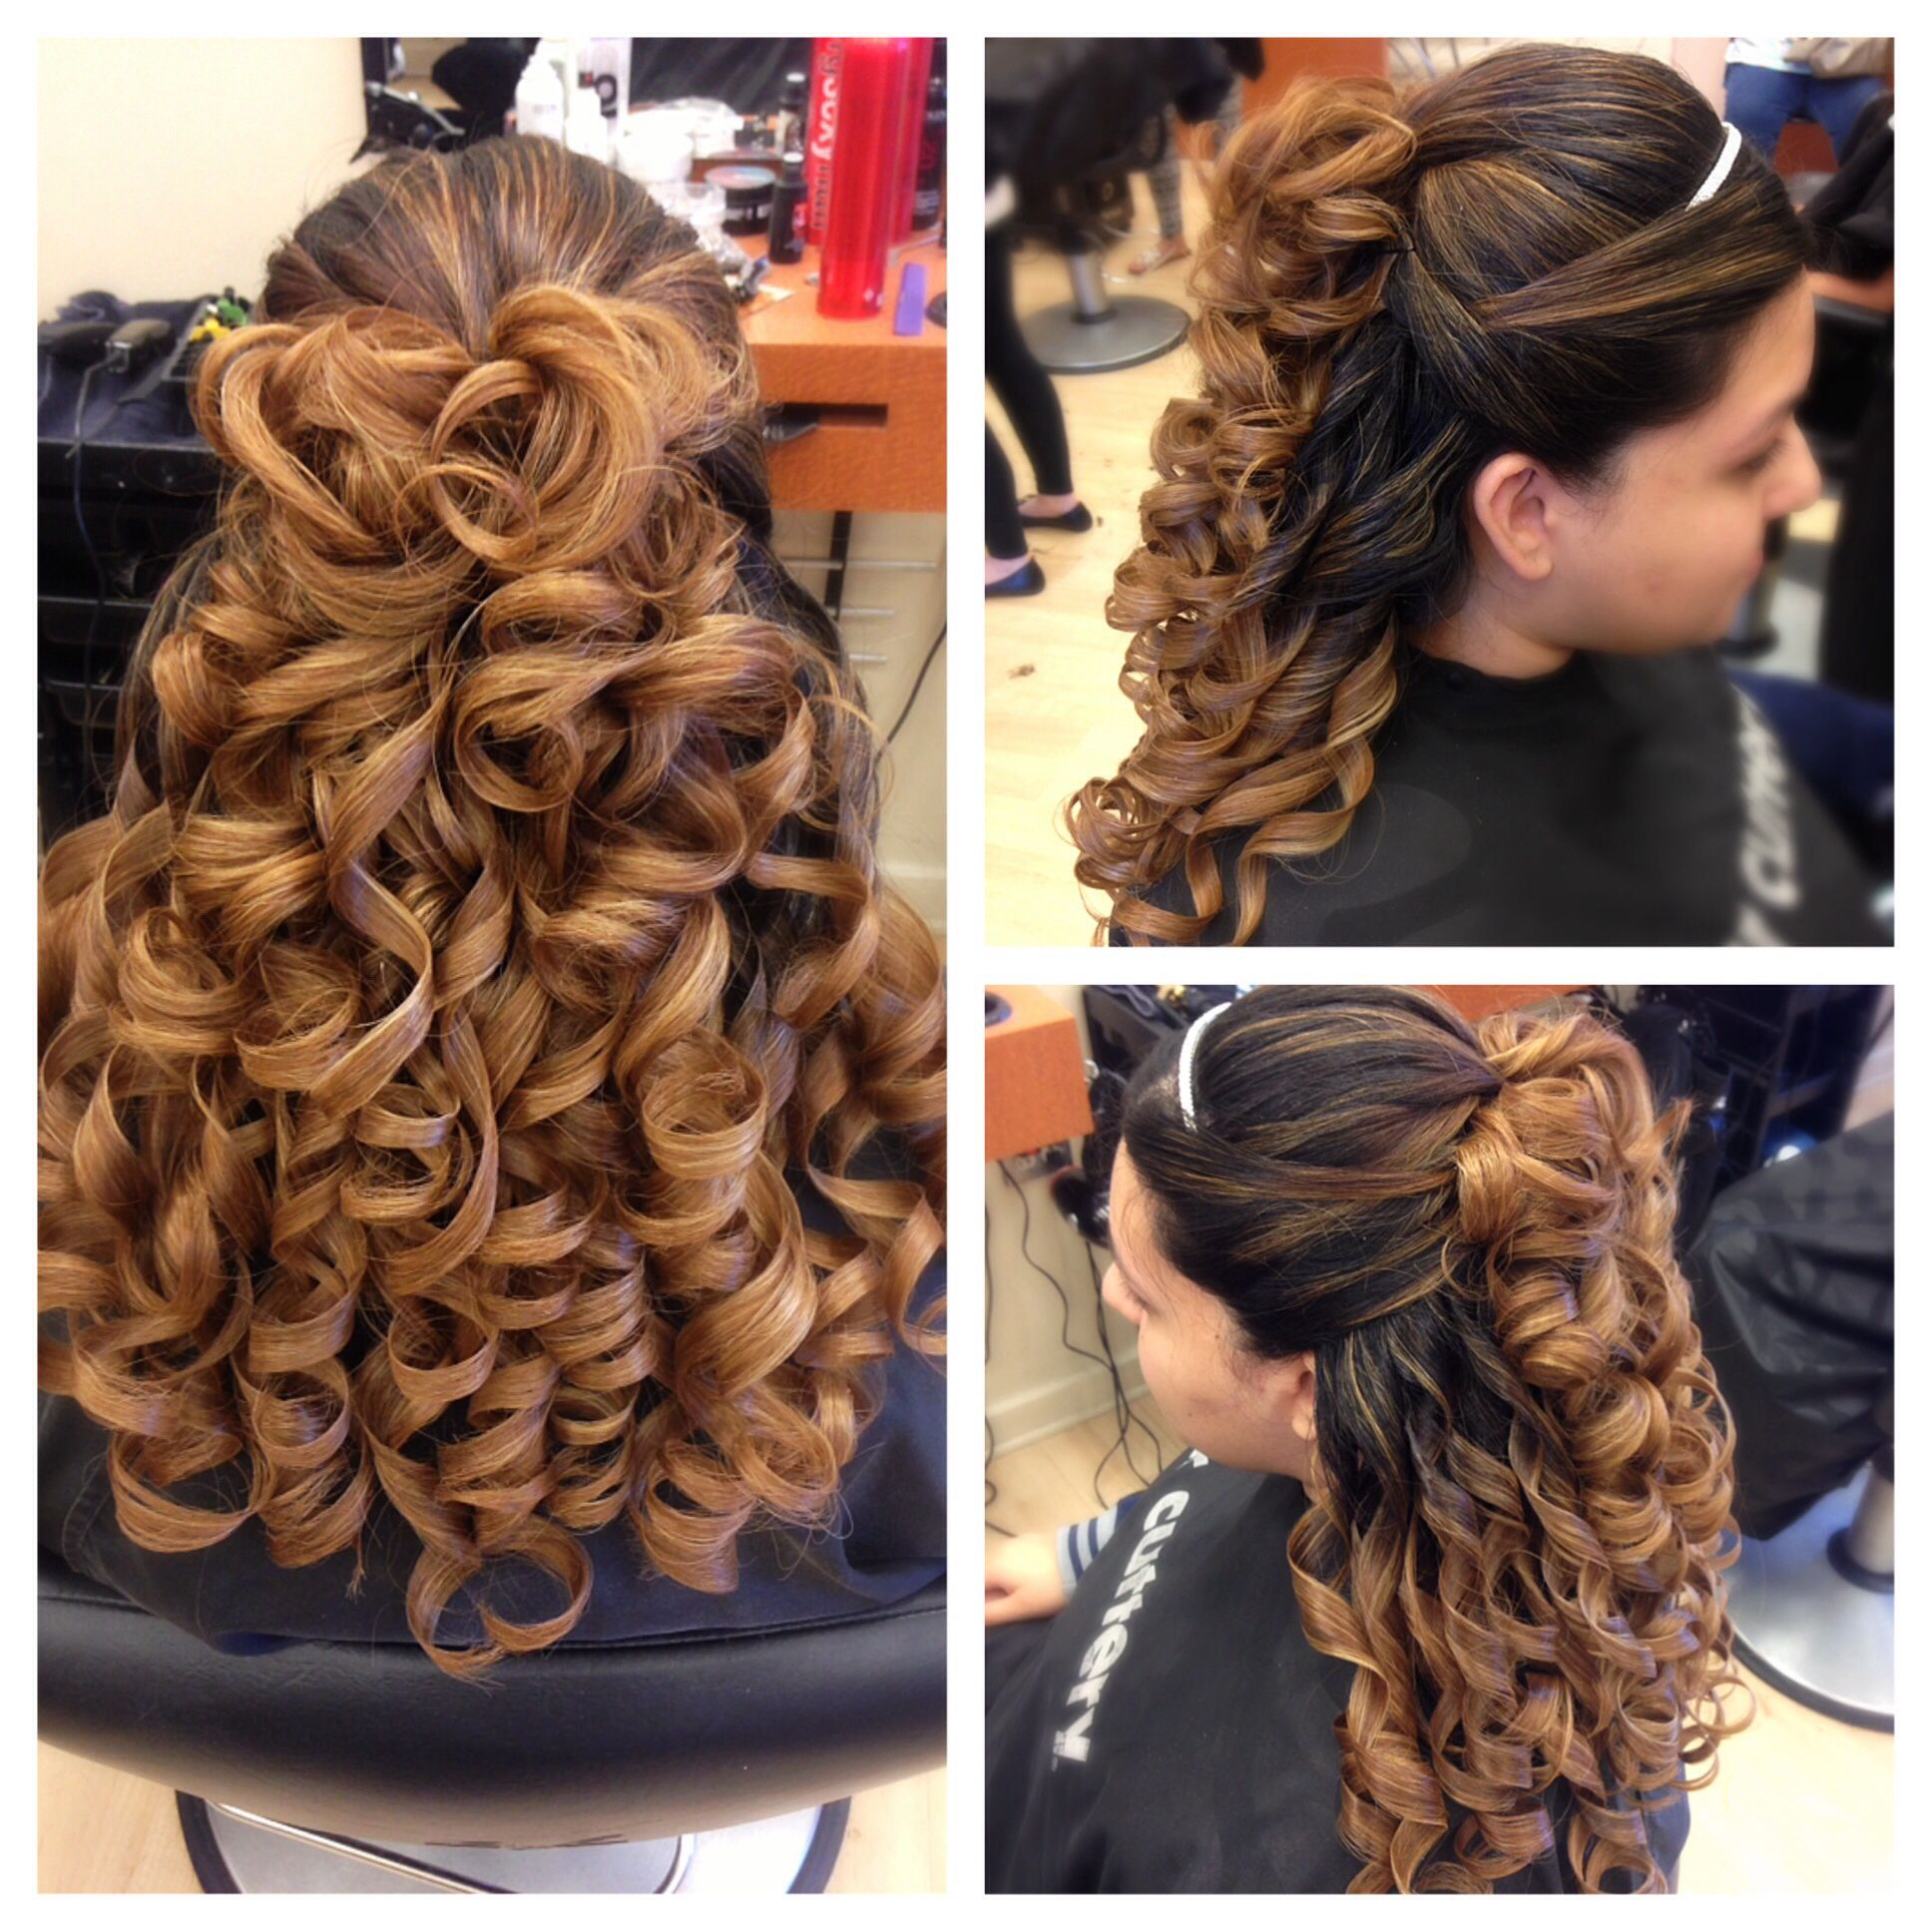 Prom Updo I Did Long Super Thick Hair Thick Hair Styles Beautiful Hair Quinceanera Hairstyles